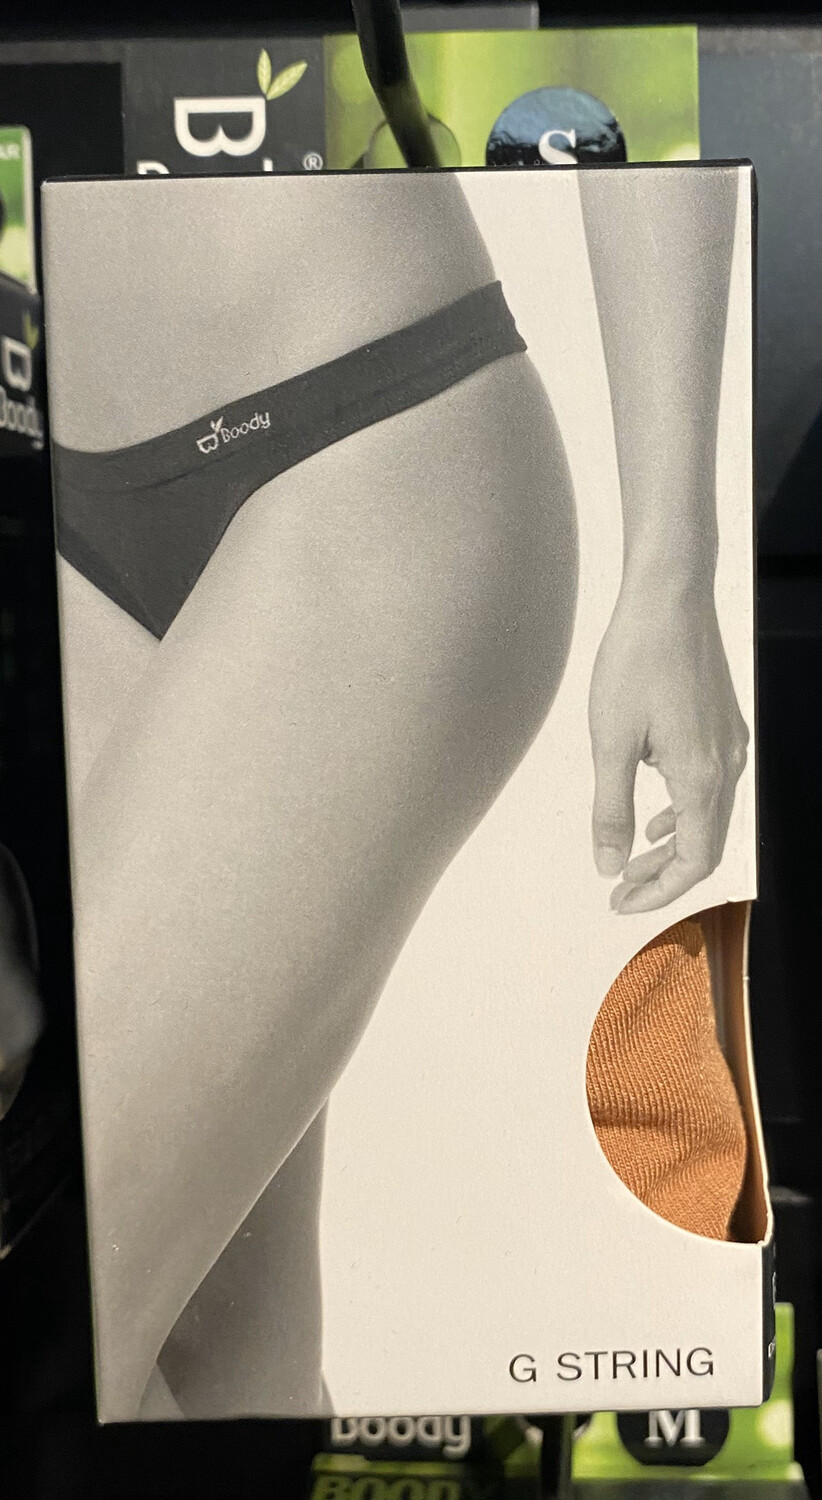 Woman's Bamboo Tan Nude G String Tap For Sizes